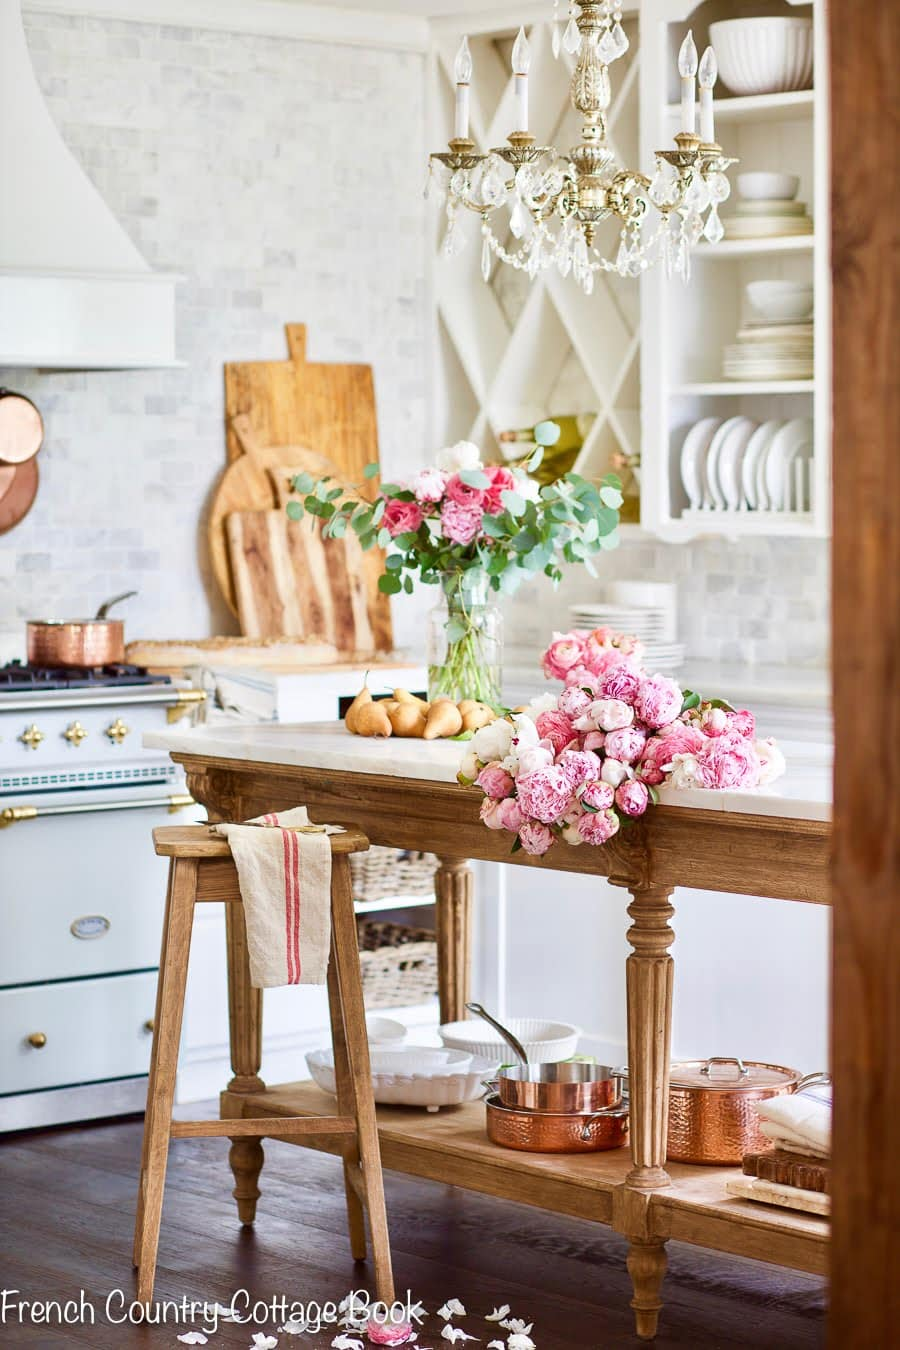 French Country Cottage Kitchen decor ideas vintage